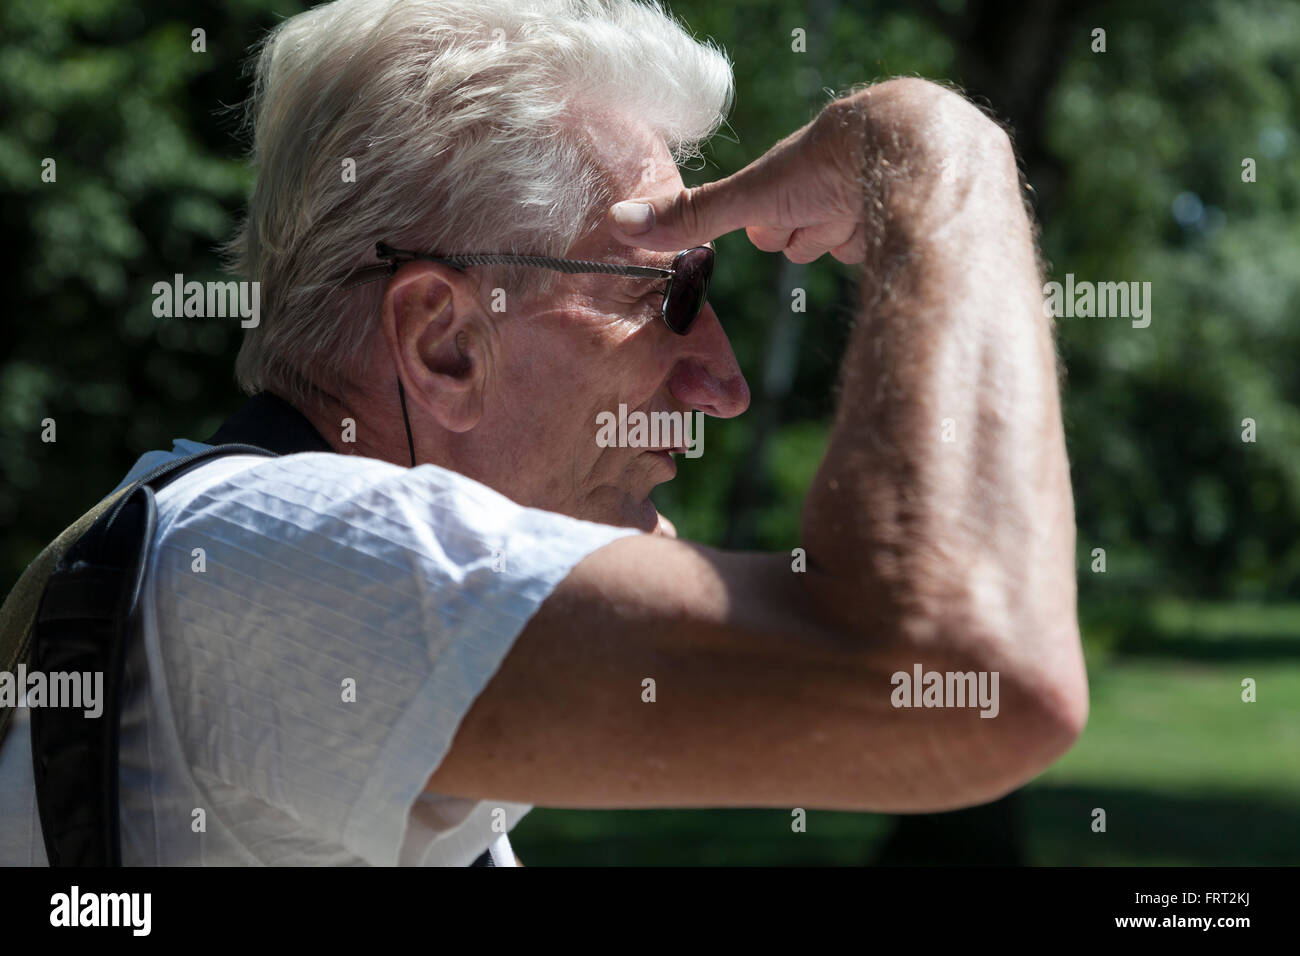 Man is looking for something - Stock Image